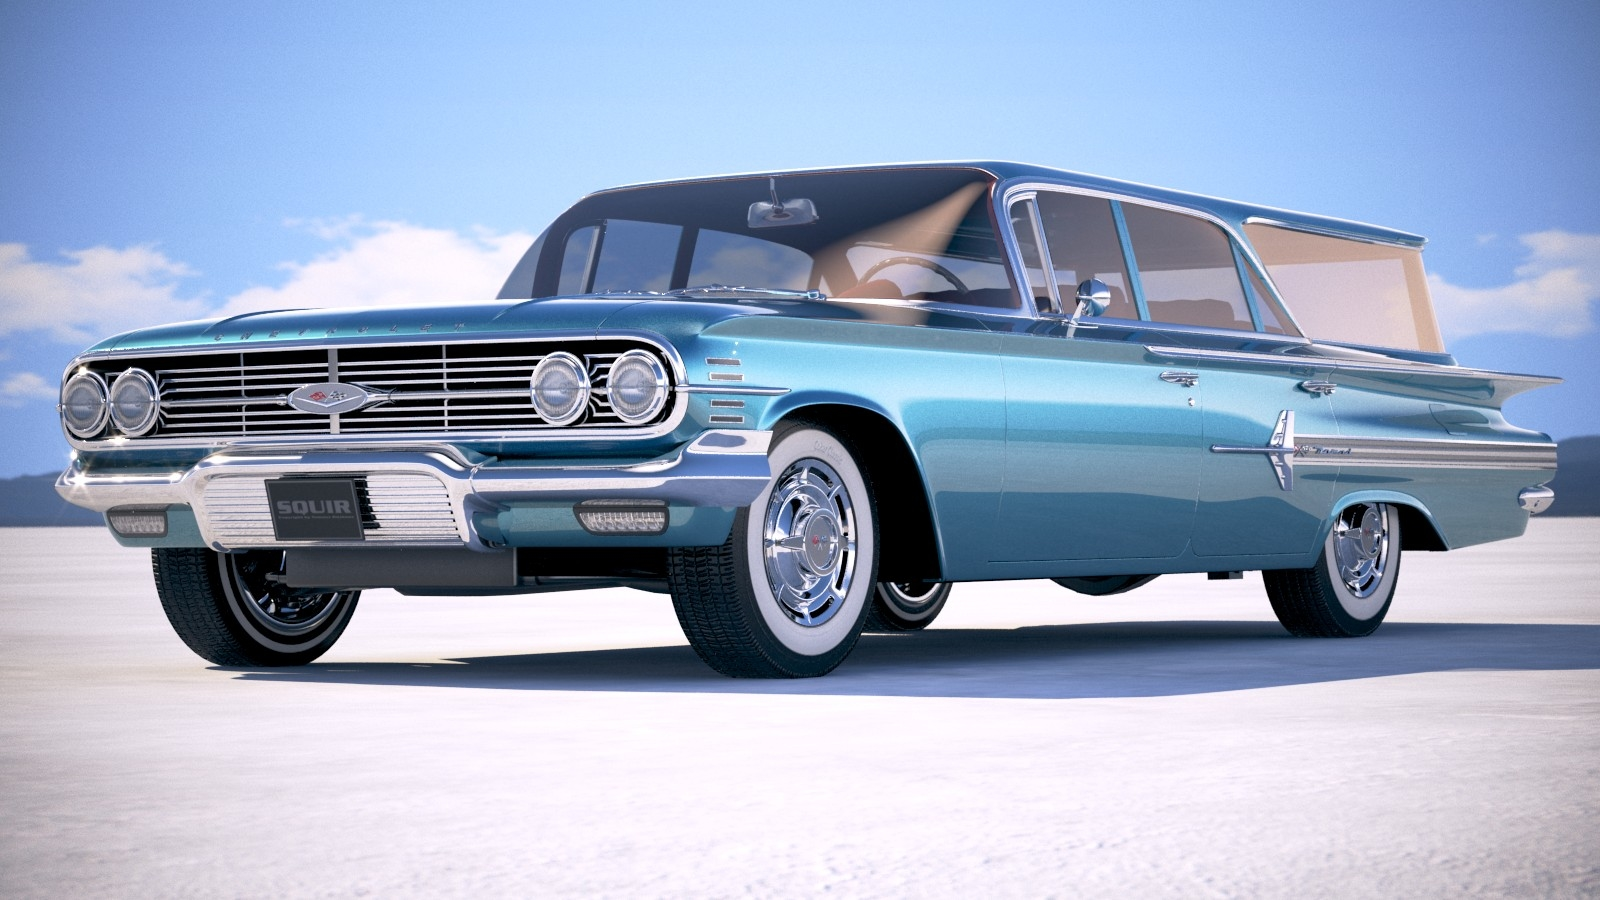 Chevrolet Nomad Wagon 1960 3D model by squir